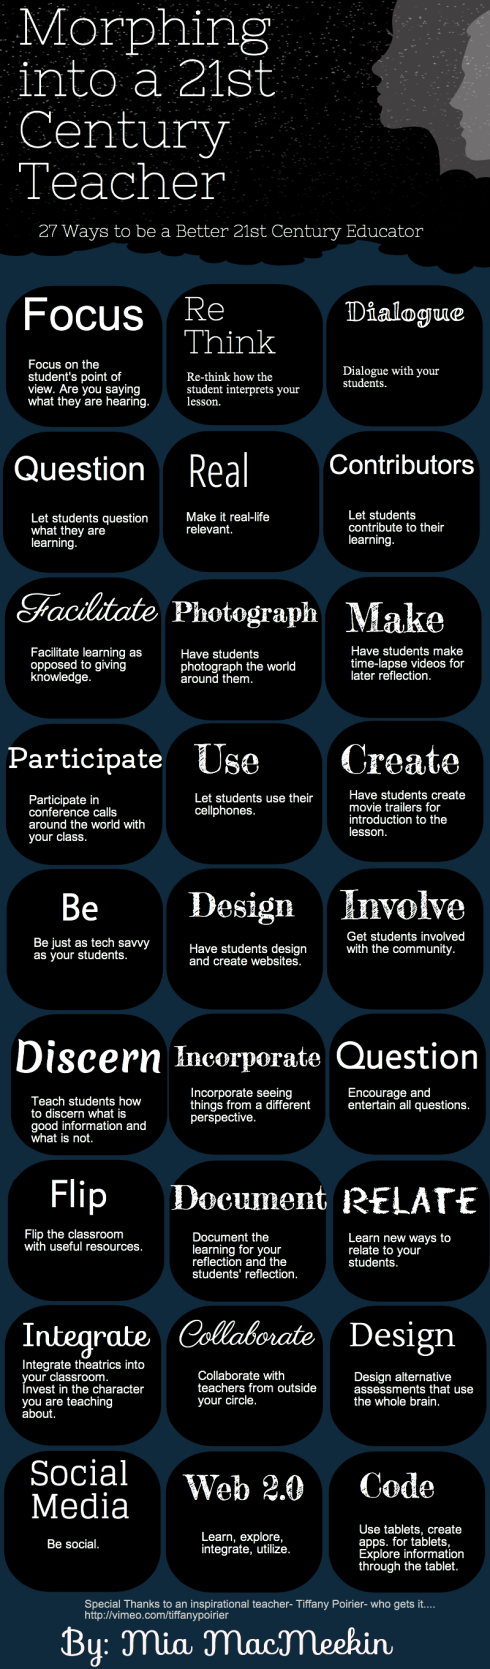 Think You're a 21st Century Educator?